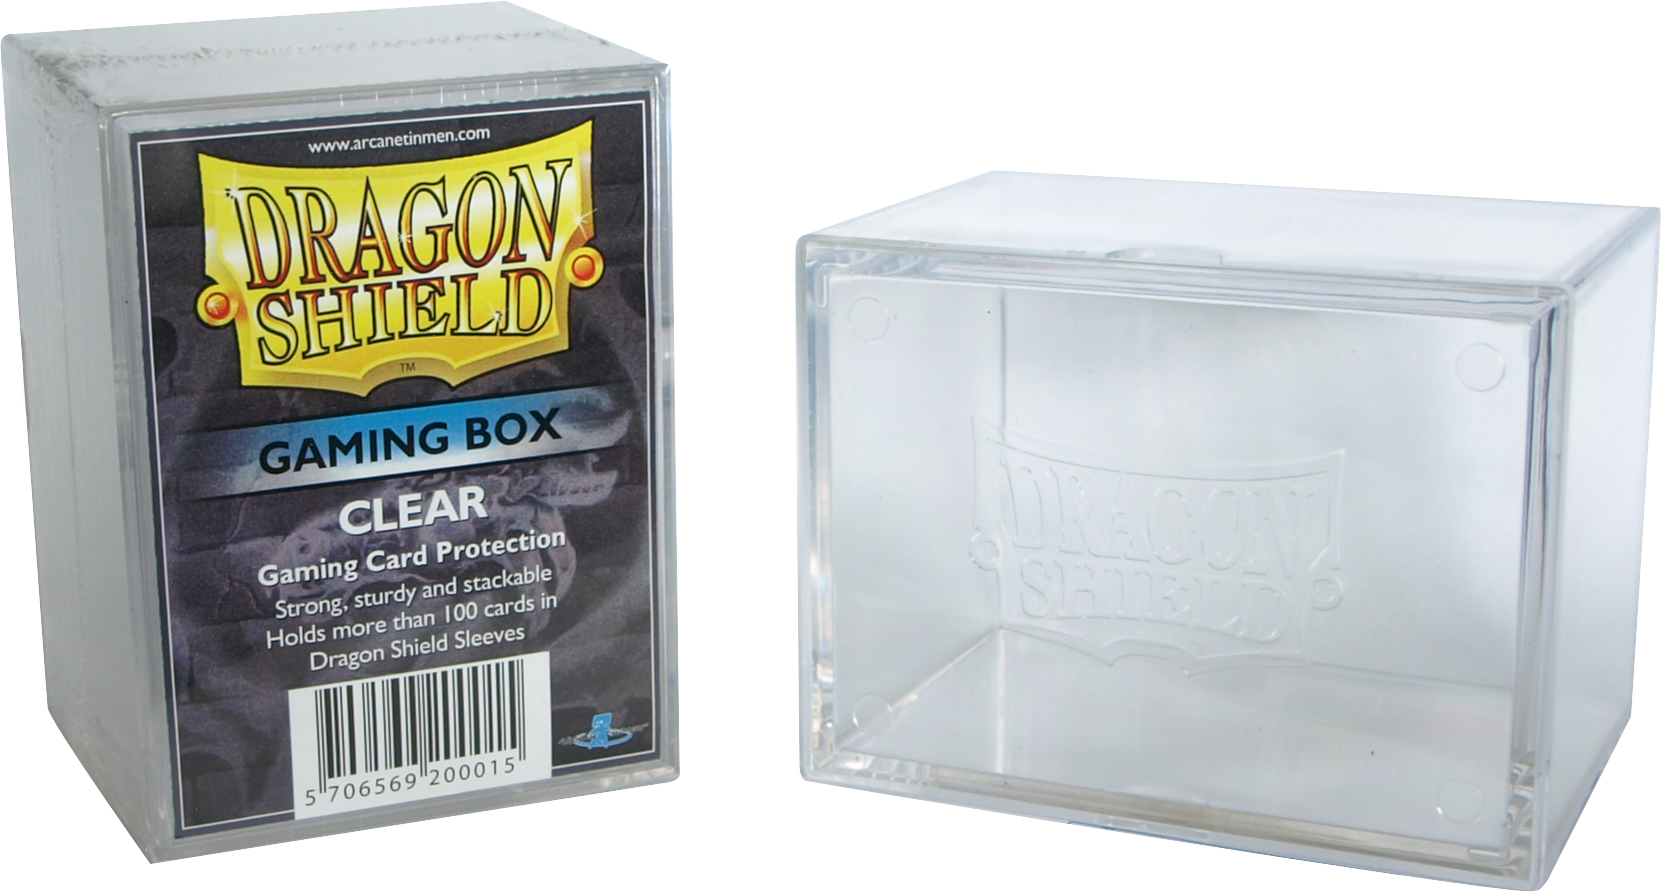 GAMING BOX - CLEAR (CONTIENE PIU' DI 100 CARTE CON LE BUSTE)